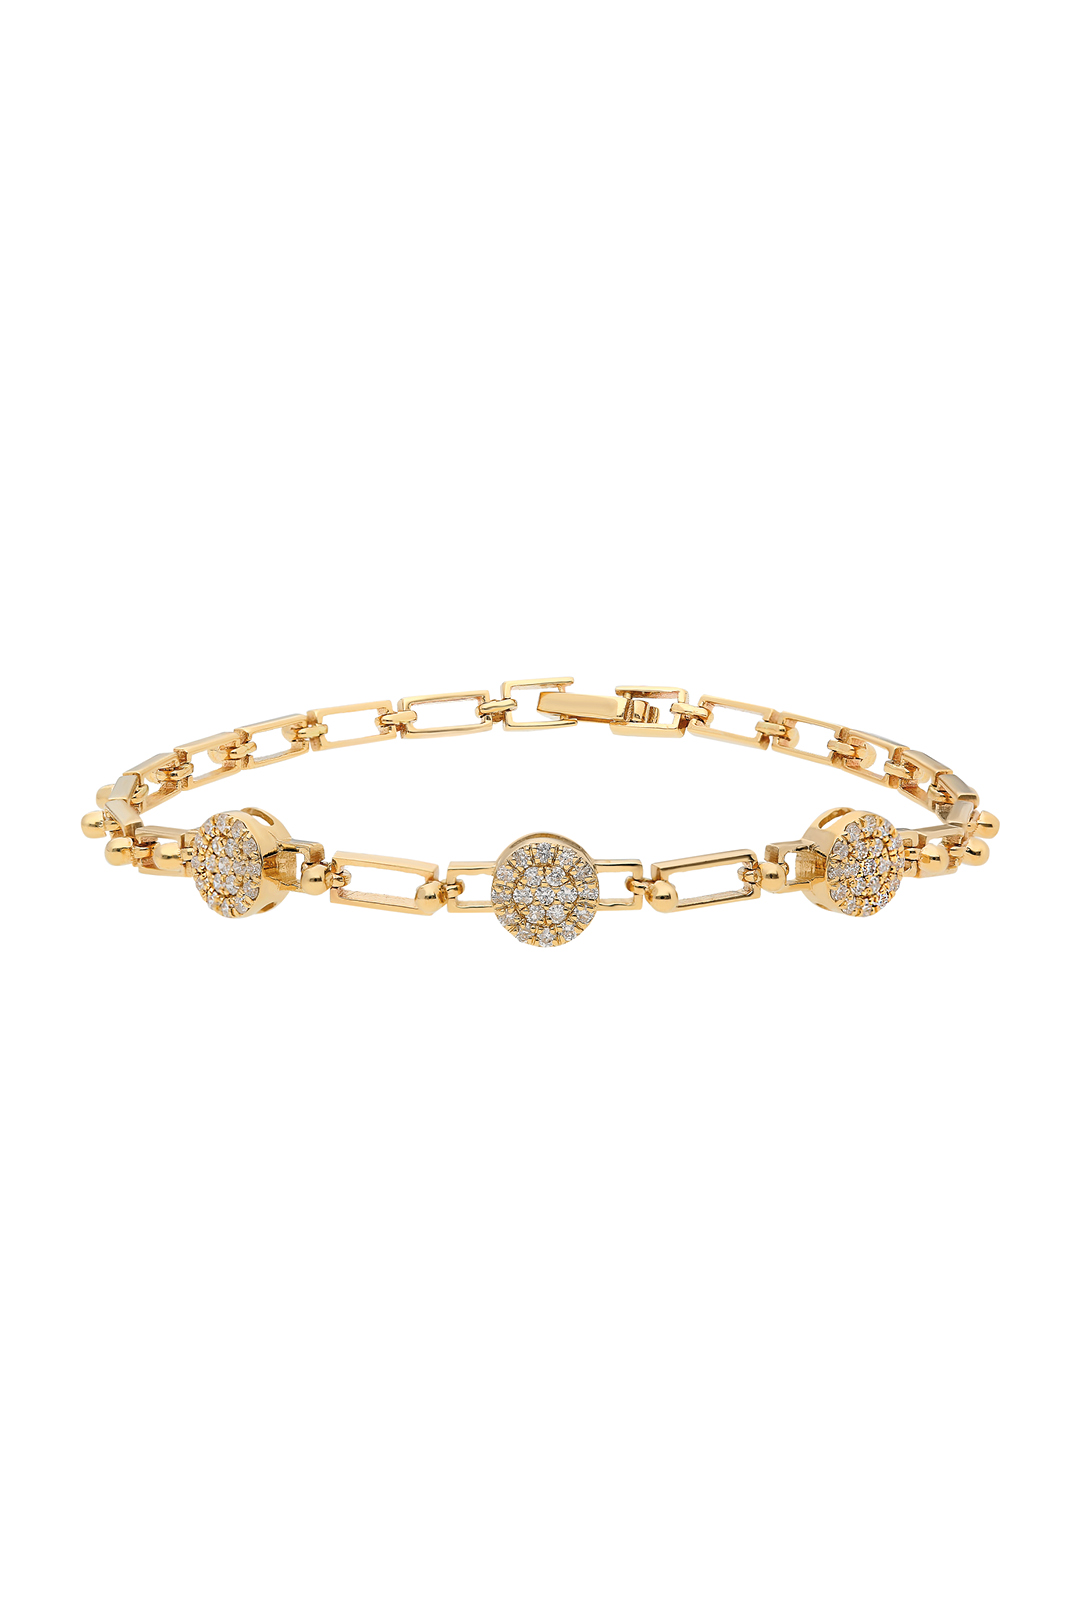 THREE CIRCLES DIAMOND BRACELET